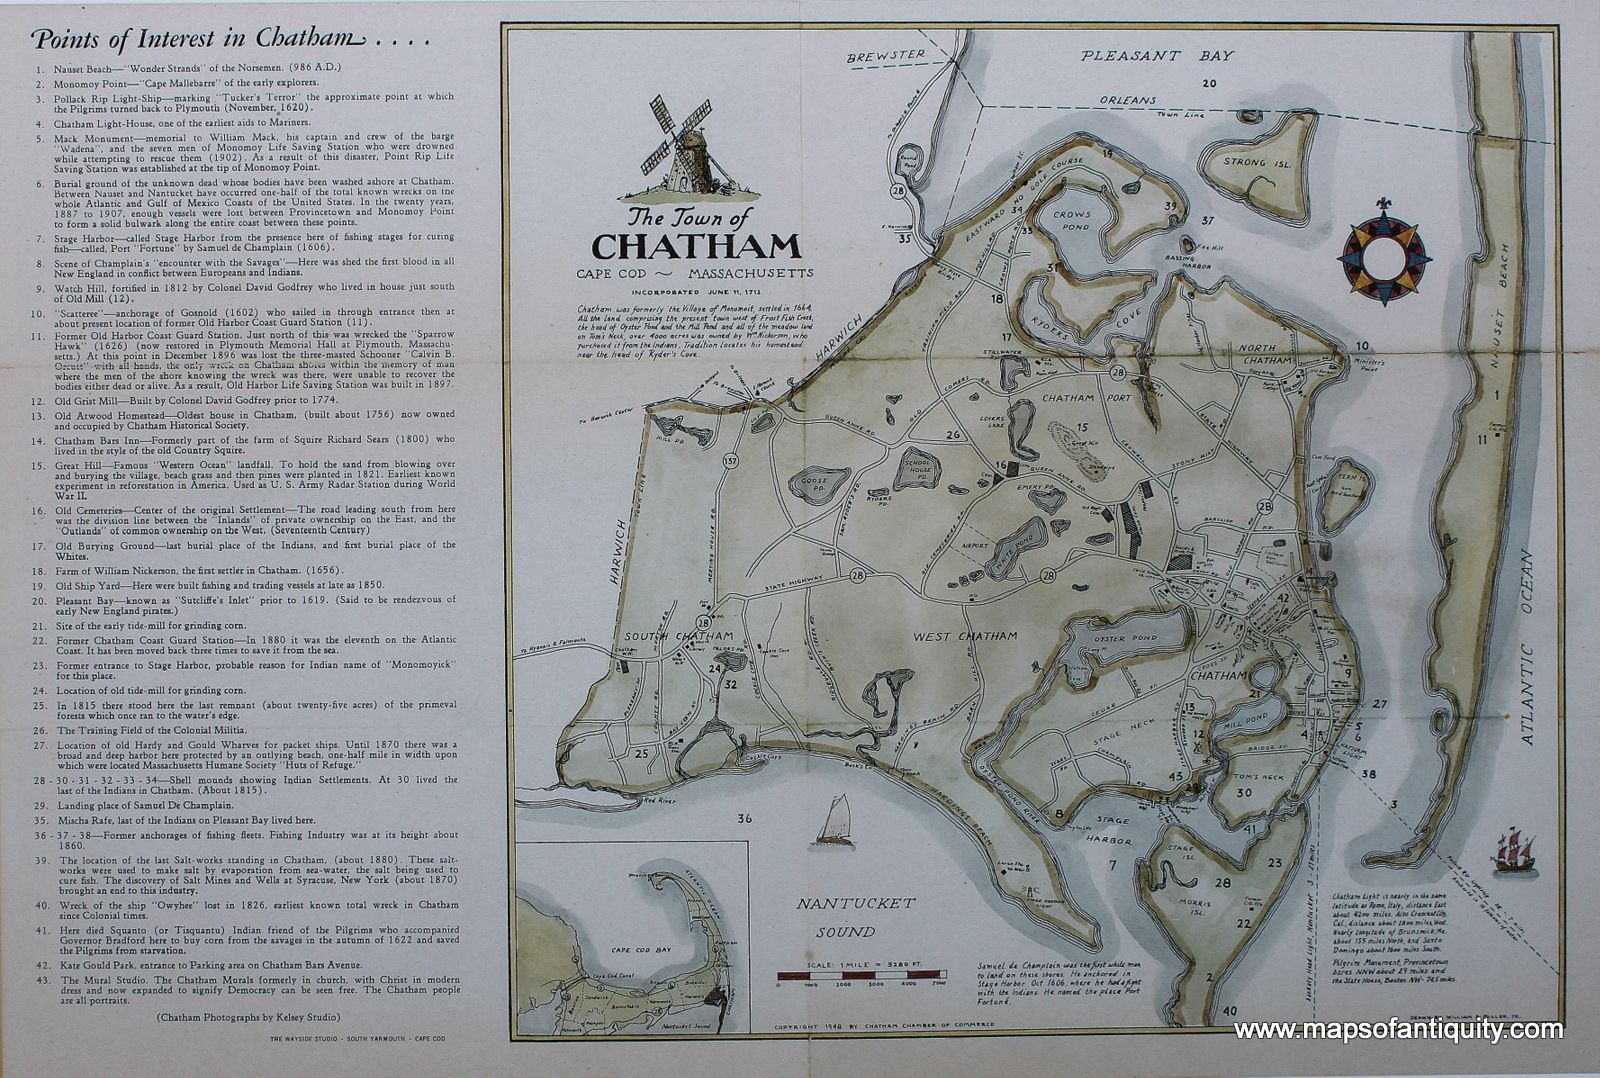 The Town of Chatham, Cape Cod, Machusetts - Reproduction ... Chatham Ma Map on yarmouth ma map, greenwich ma map, millers falls ma map, cape cod map, chatham bars inn, newtonville ma map, chatham mass, attleboro ma map, northumberland ma map, chatham massachusetts, massachusetts ma map, portsmouth ma map, south boston ma map, camp edwards ma map, woodbridge ma map, westfield ma map, dunstable ma map, east orleans ma map, new marlborough ma map, martha's vineyard ma map,